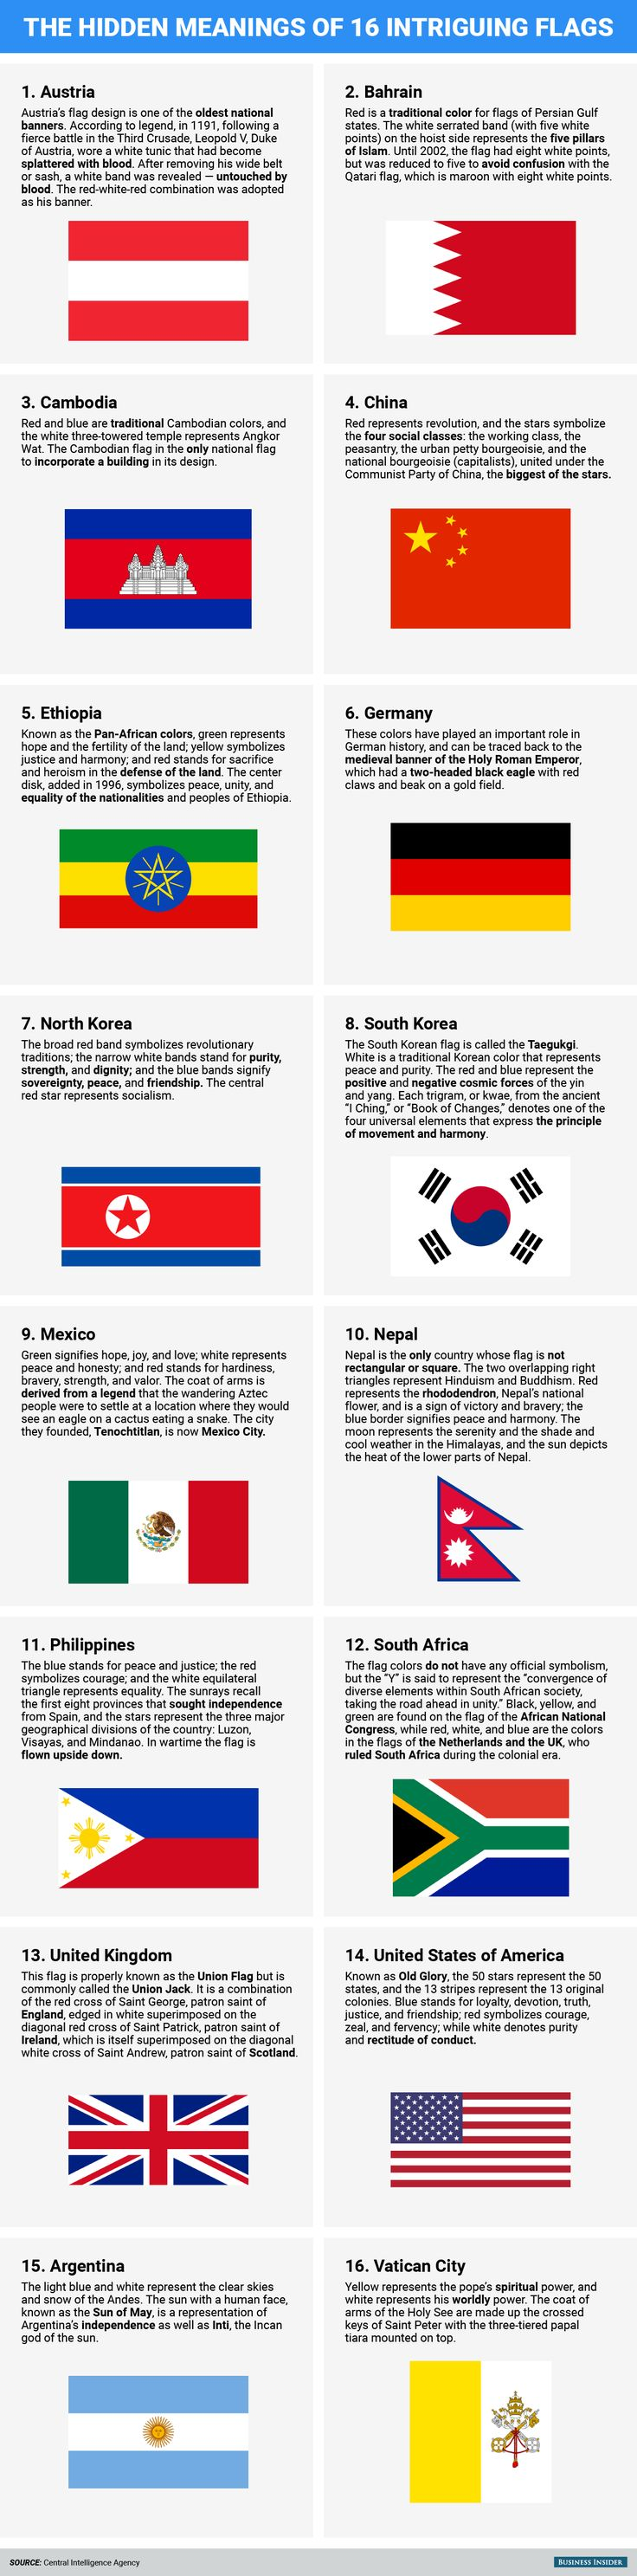 best From Around the World images on Pinterest Knowledge